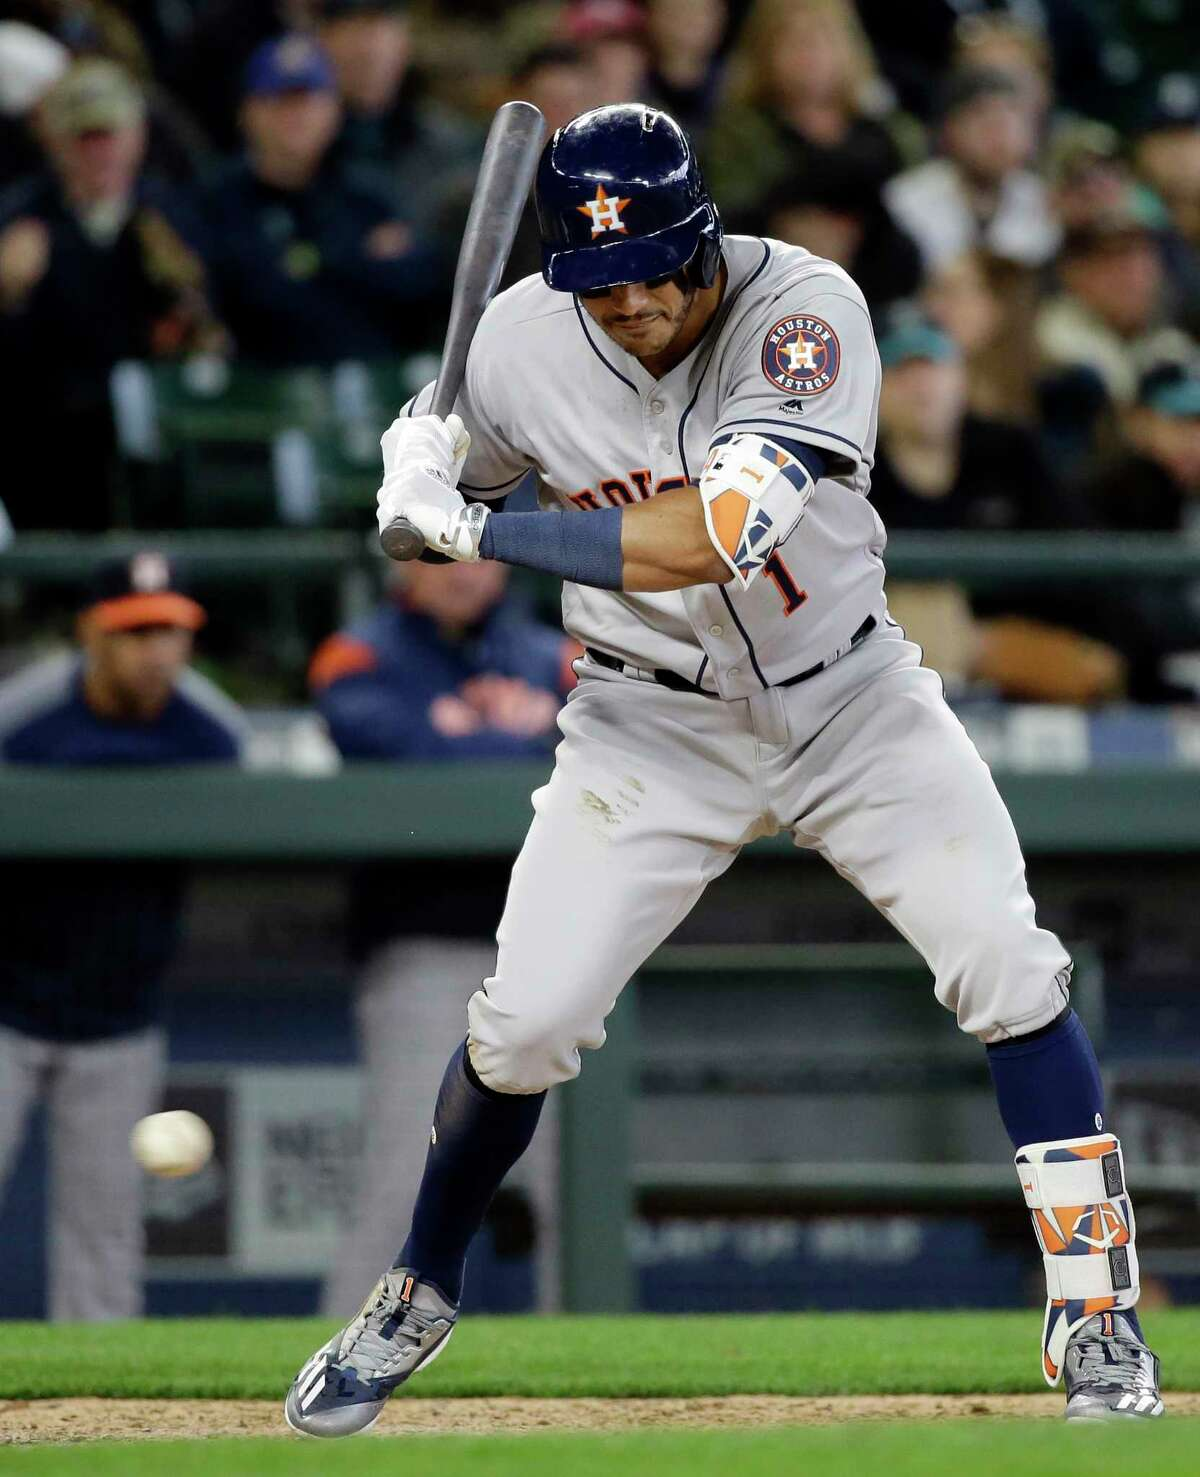 Houston Astros' Carlos Correa watches a called third strike go past against the Seattle Mariners in the eighth inning of a baseball game, Monday, April 10, 2017, in Seattle. The Mariners won 6-0. (AP Photo/Elaine Thompson)